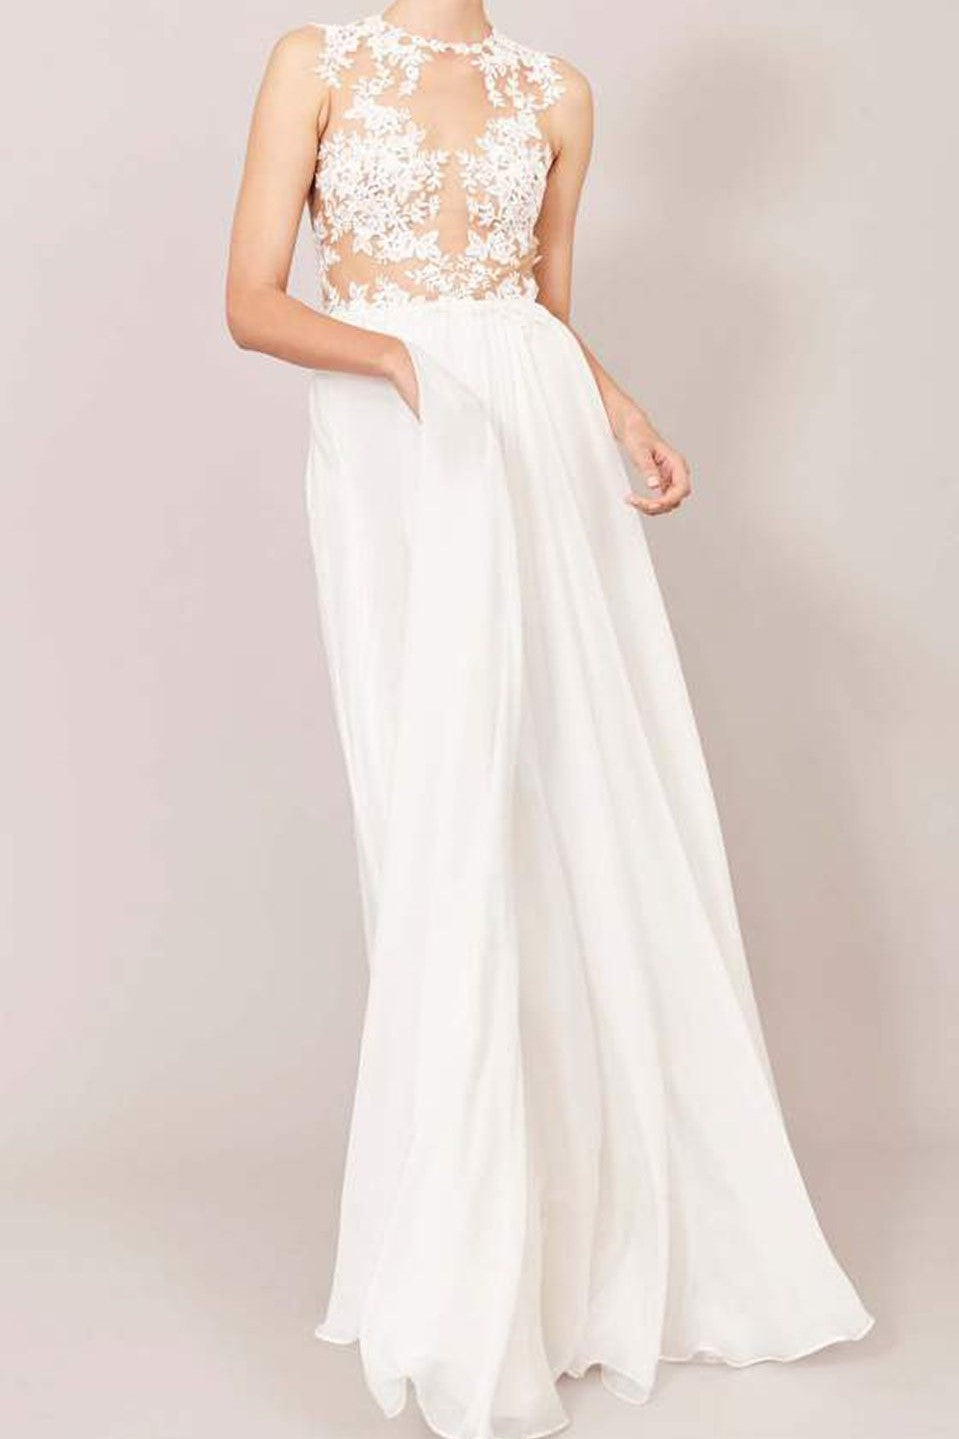 Elegant Lace Illusion Scoop Neck Sleeveless Floor-Length Sheath Chiffon Wedding Dress